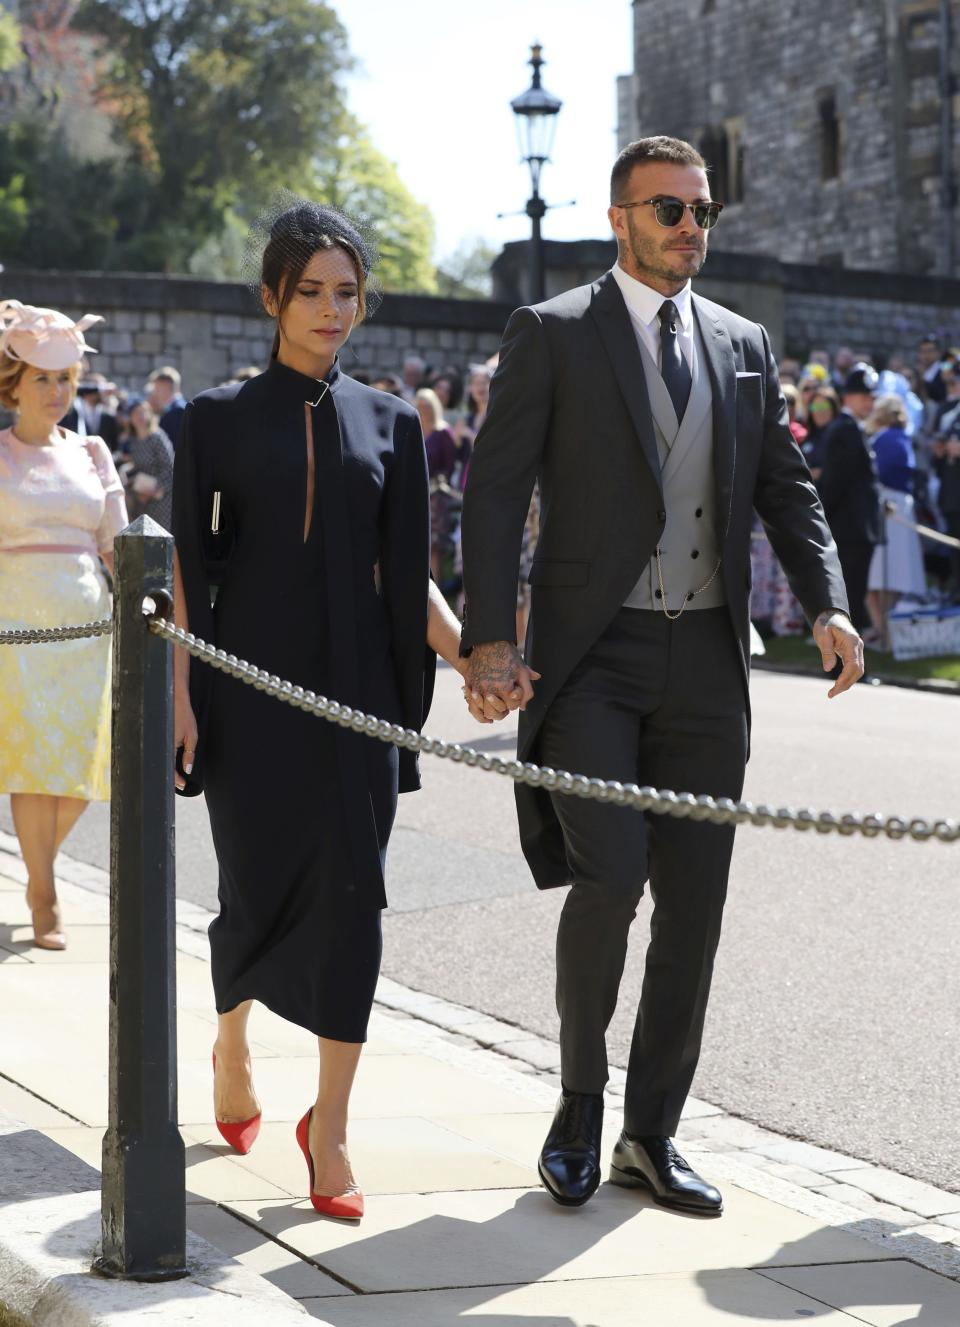 David and Victoria Beckham have also arrived.